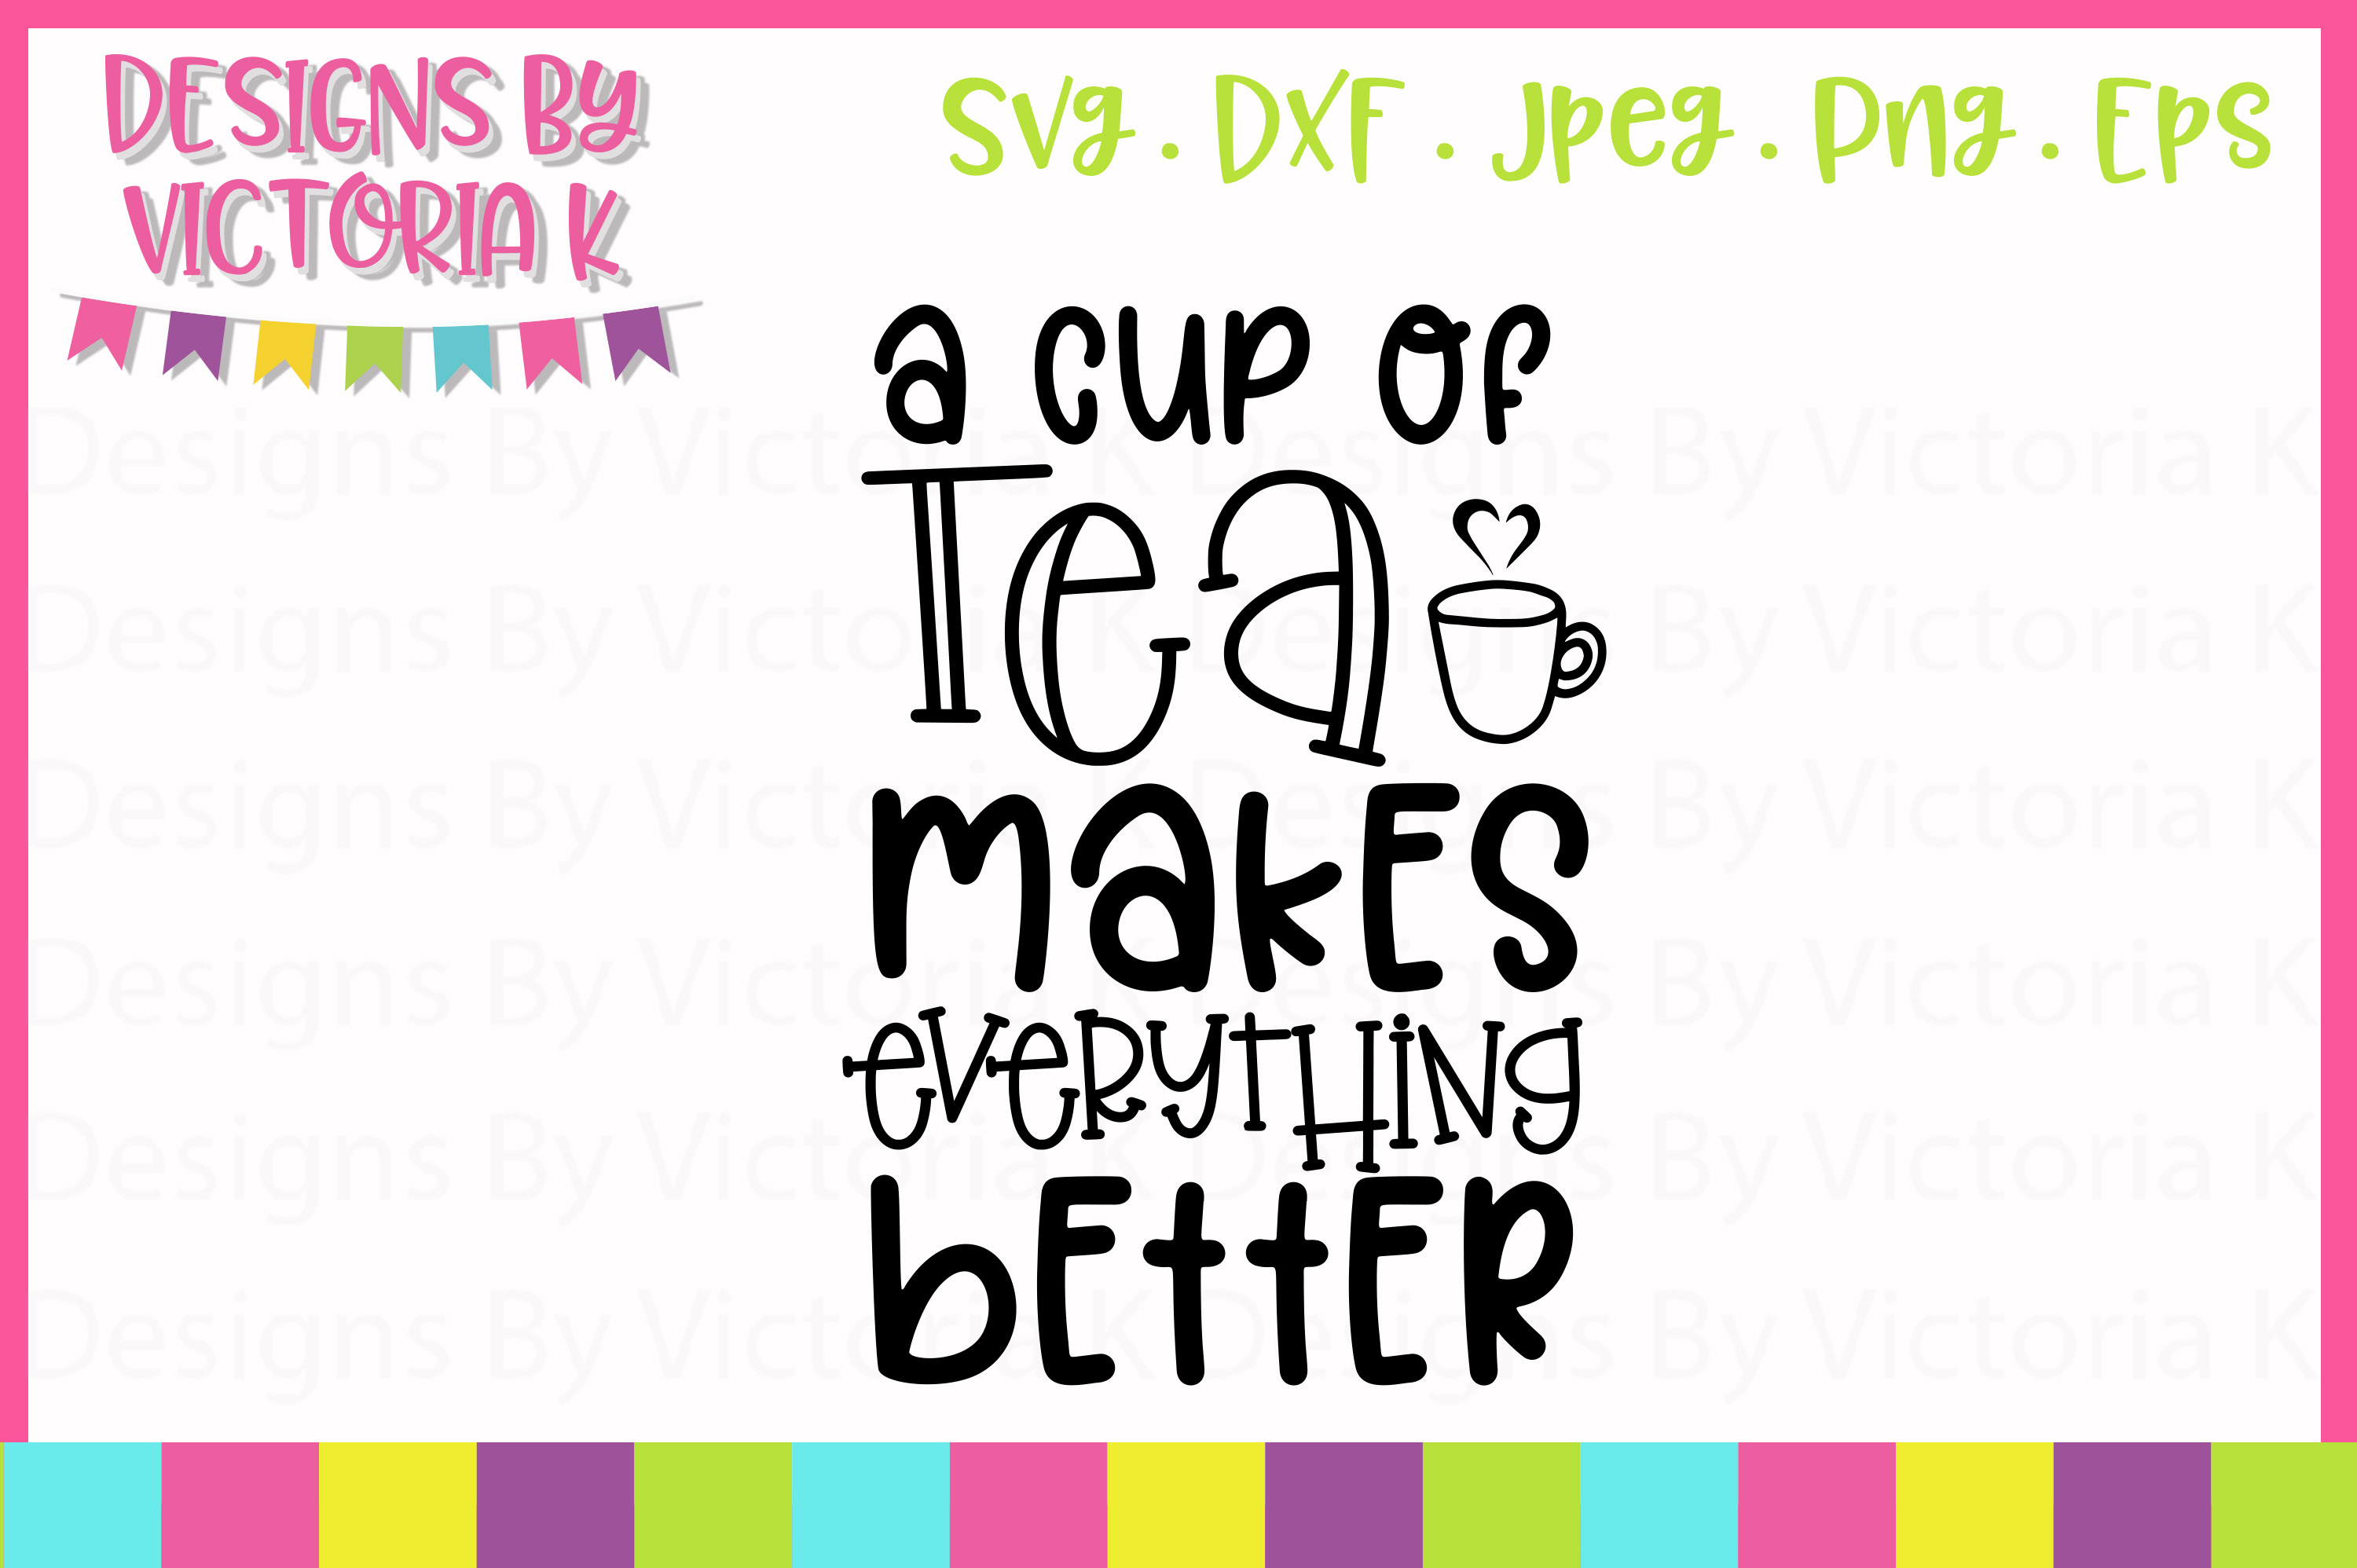 Download Free Tea Makes Everything Better Svg Graphic By Designs By Victoria K for Cricut Explore, Silhouette and other cutting machines.